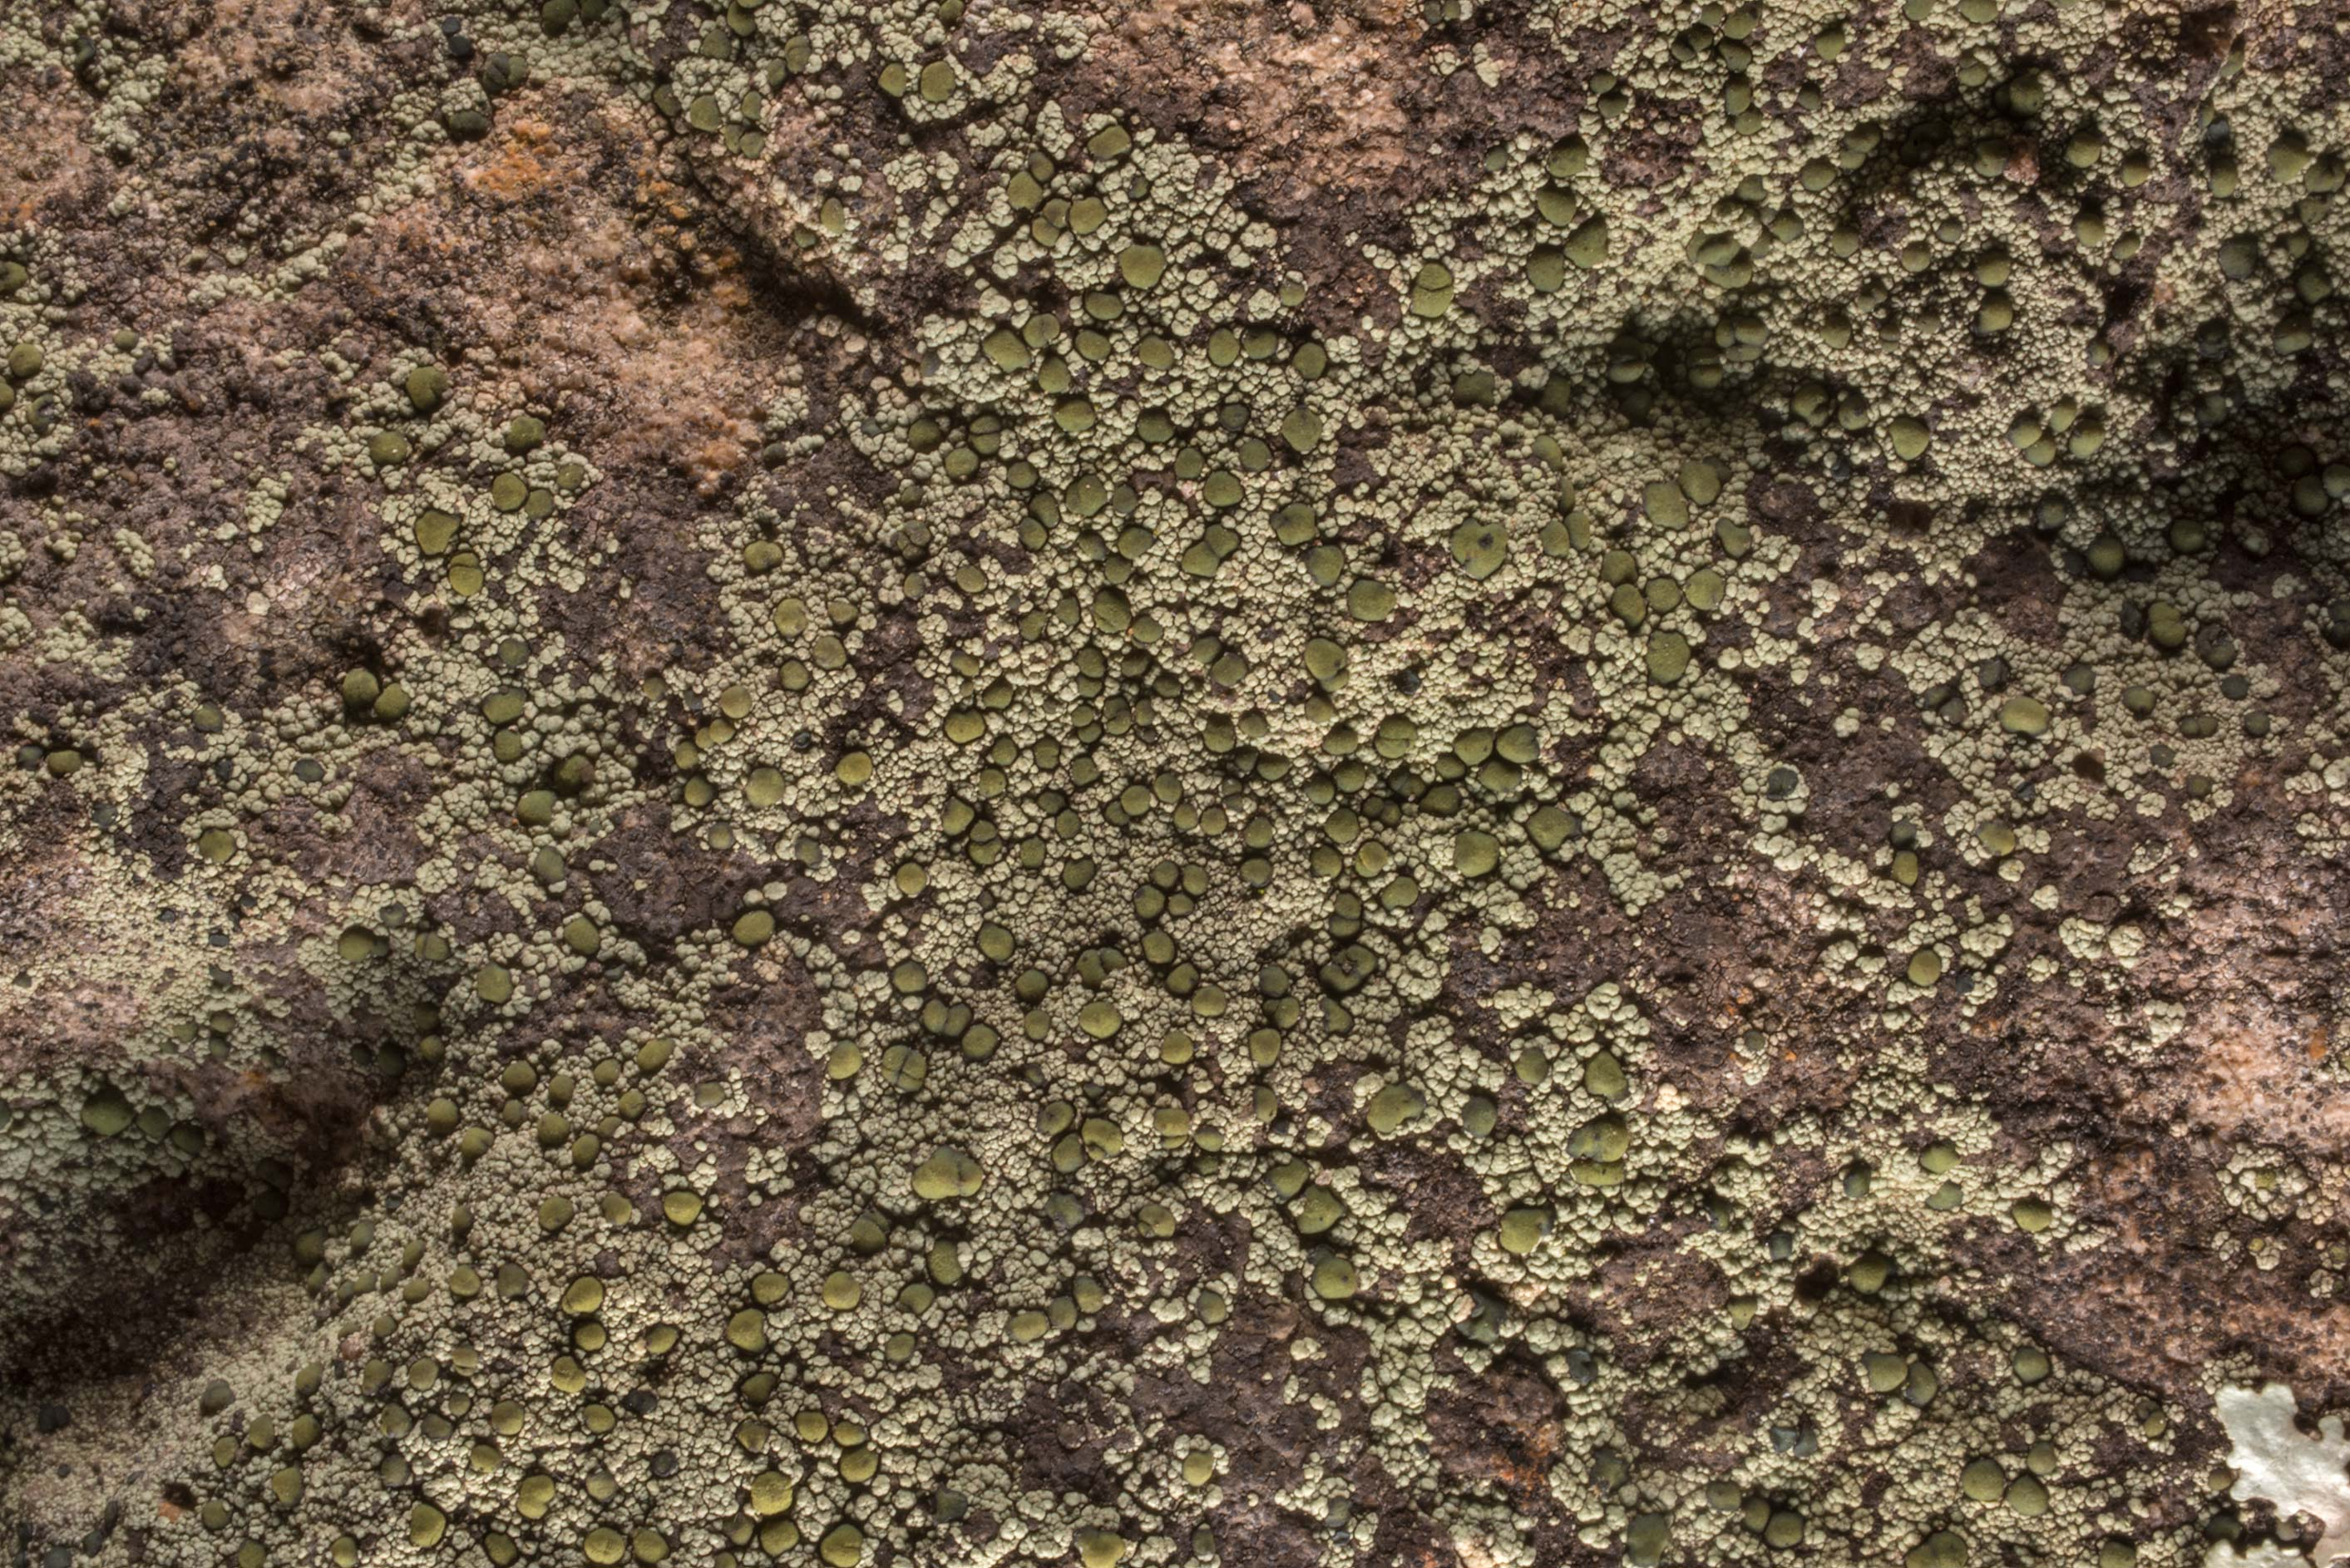 A lichen with olive green apothecia on a rock in...of Somerville Lake State Park. Texas